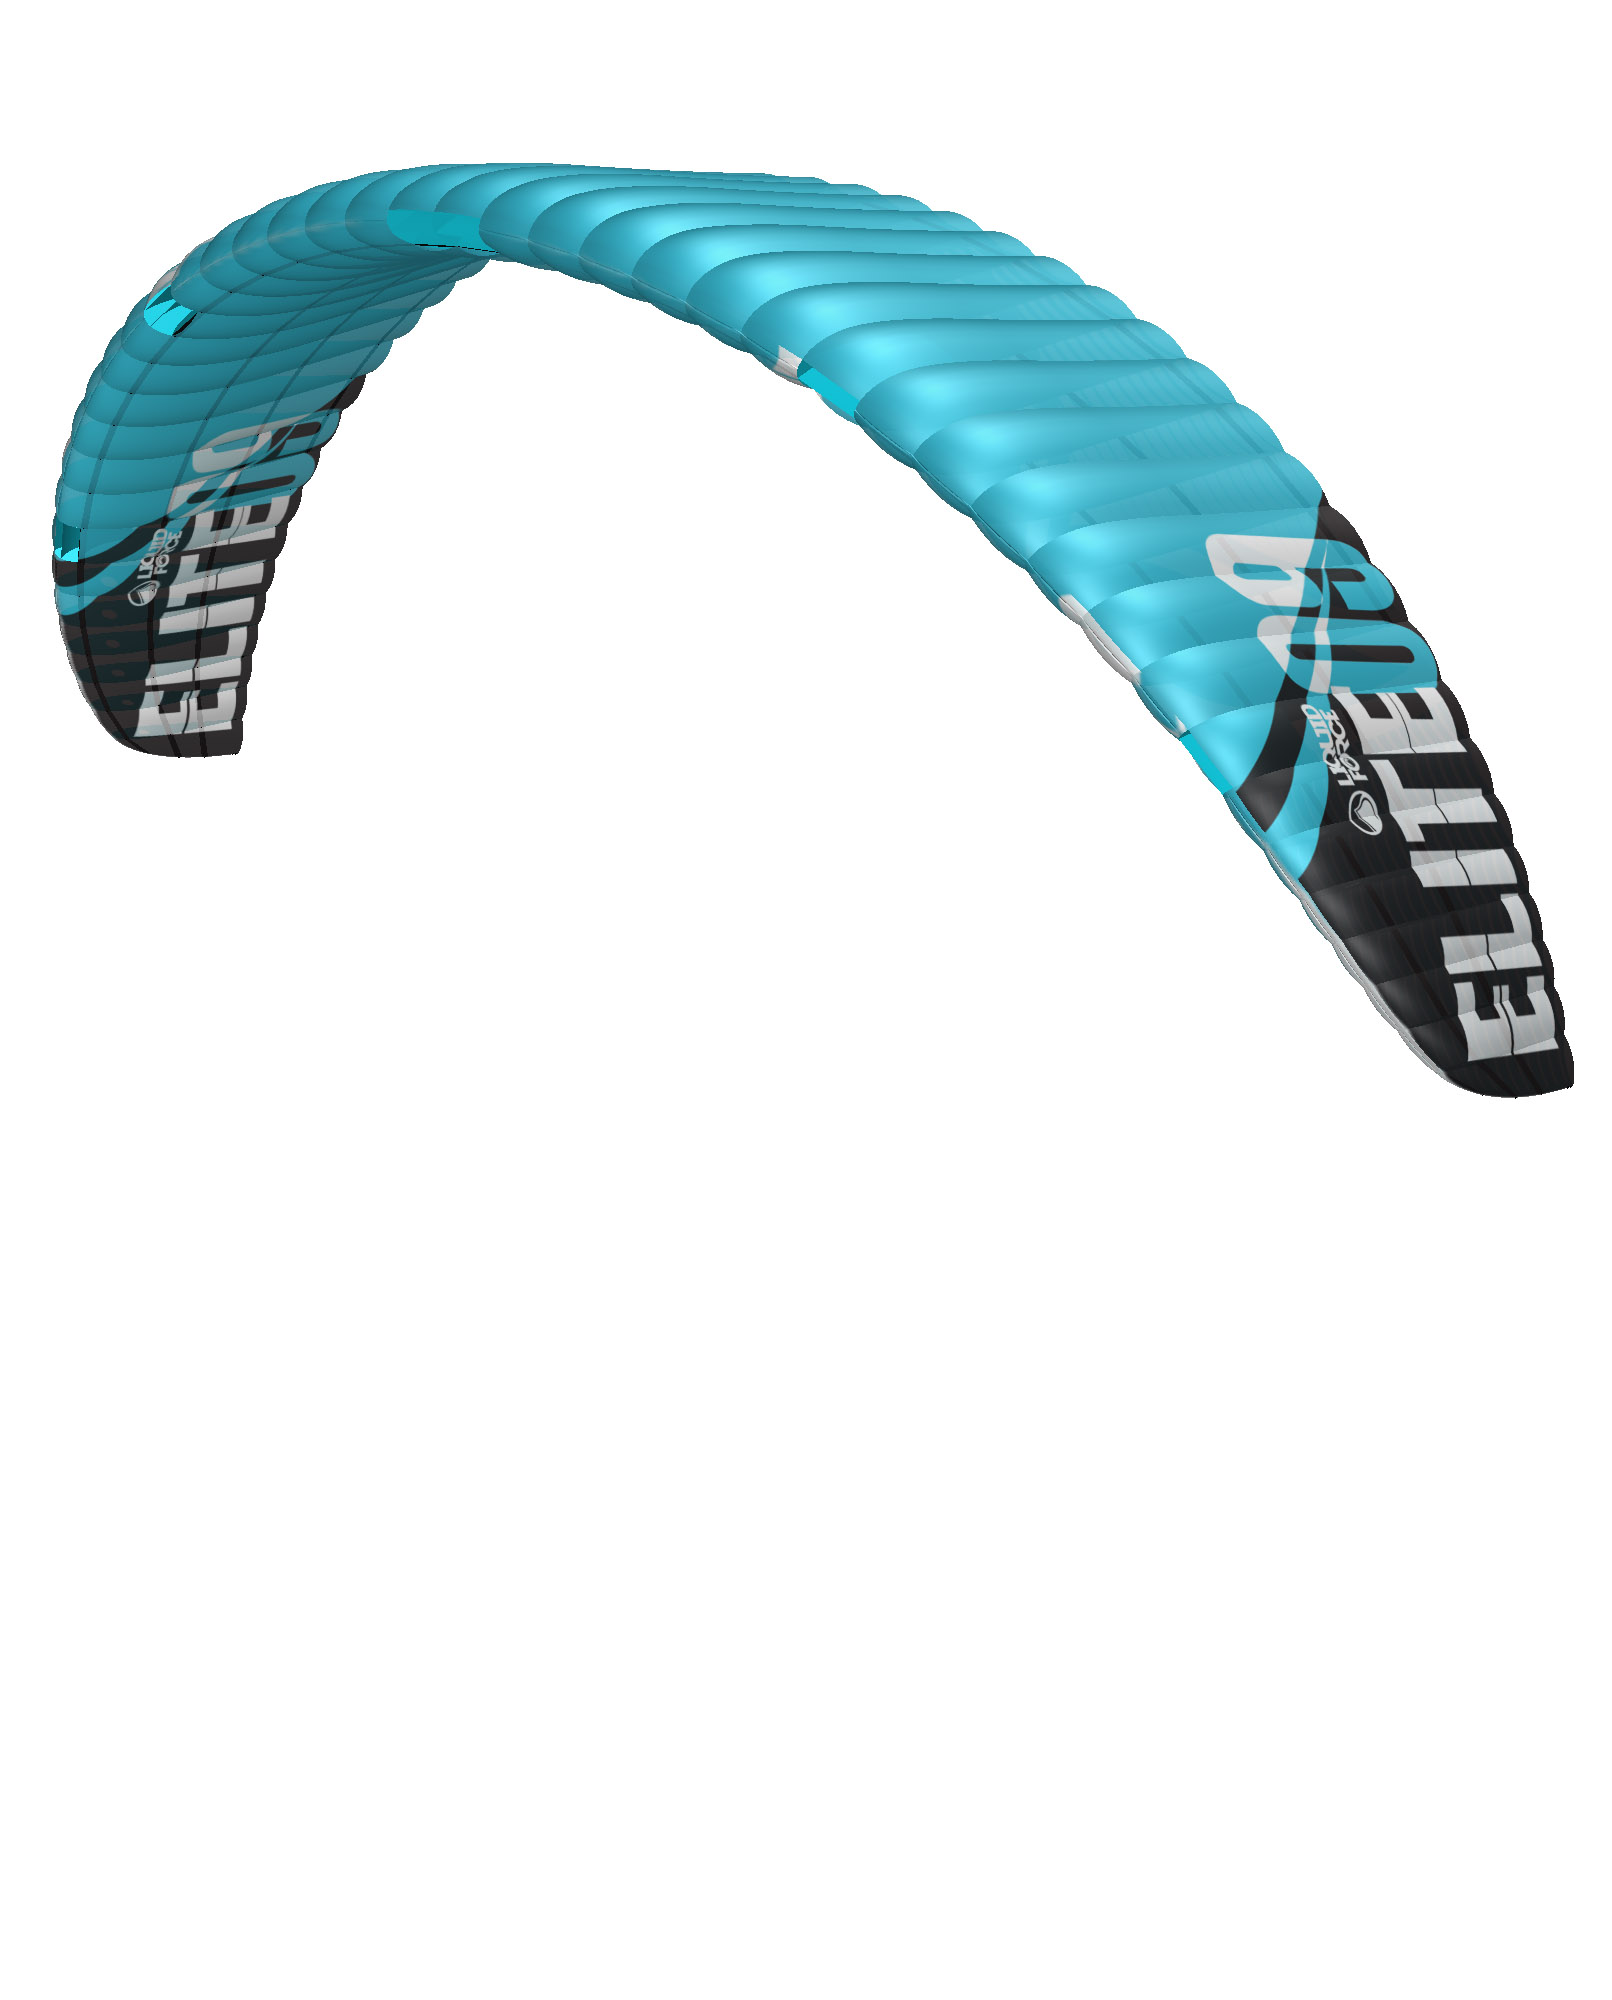 Kites LIQUID FORCE Elite (6,5až15m) (2018/2019) freeride/freestyle/foil/wave